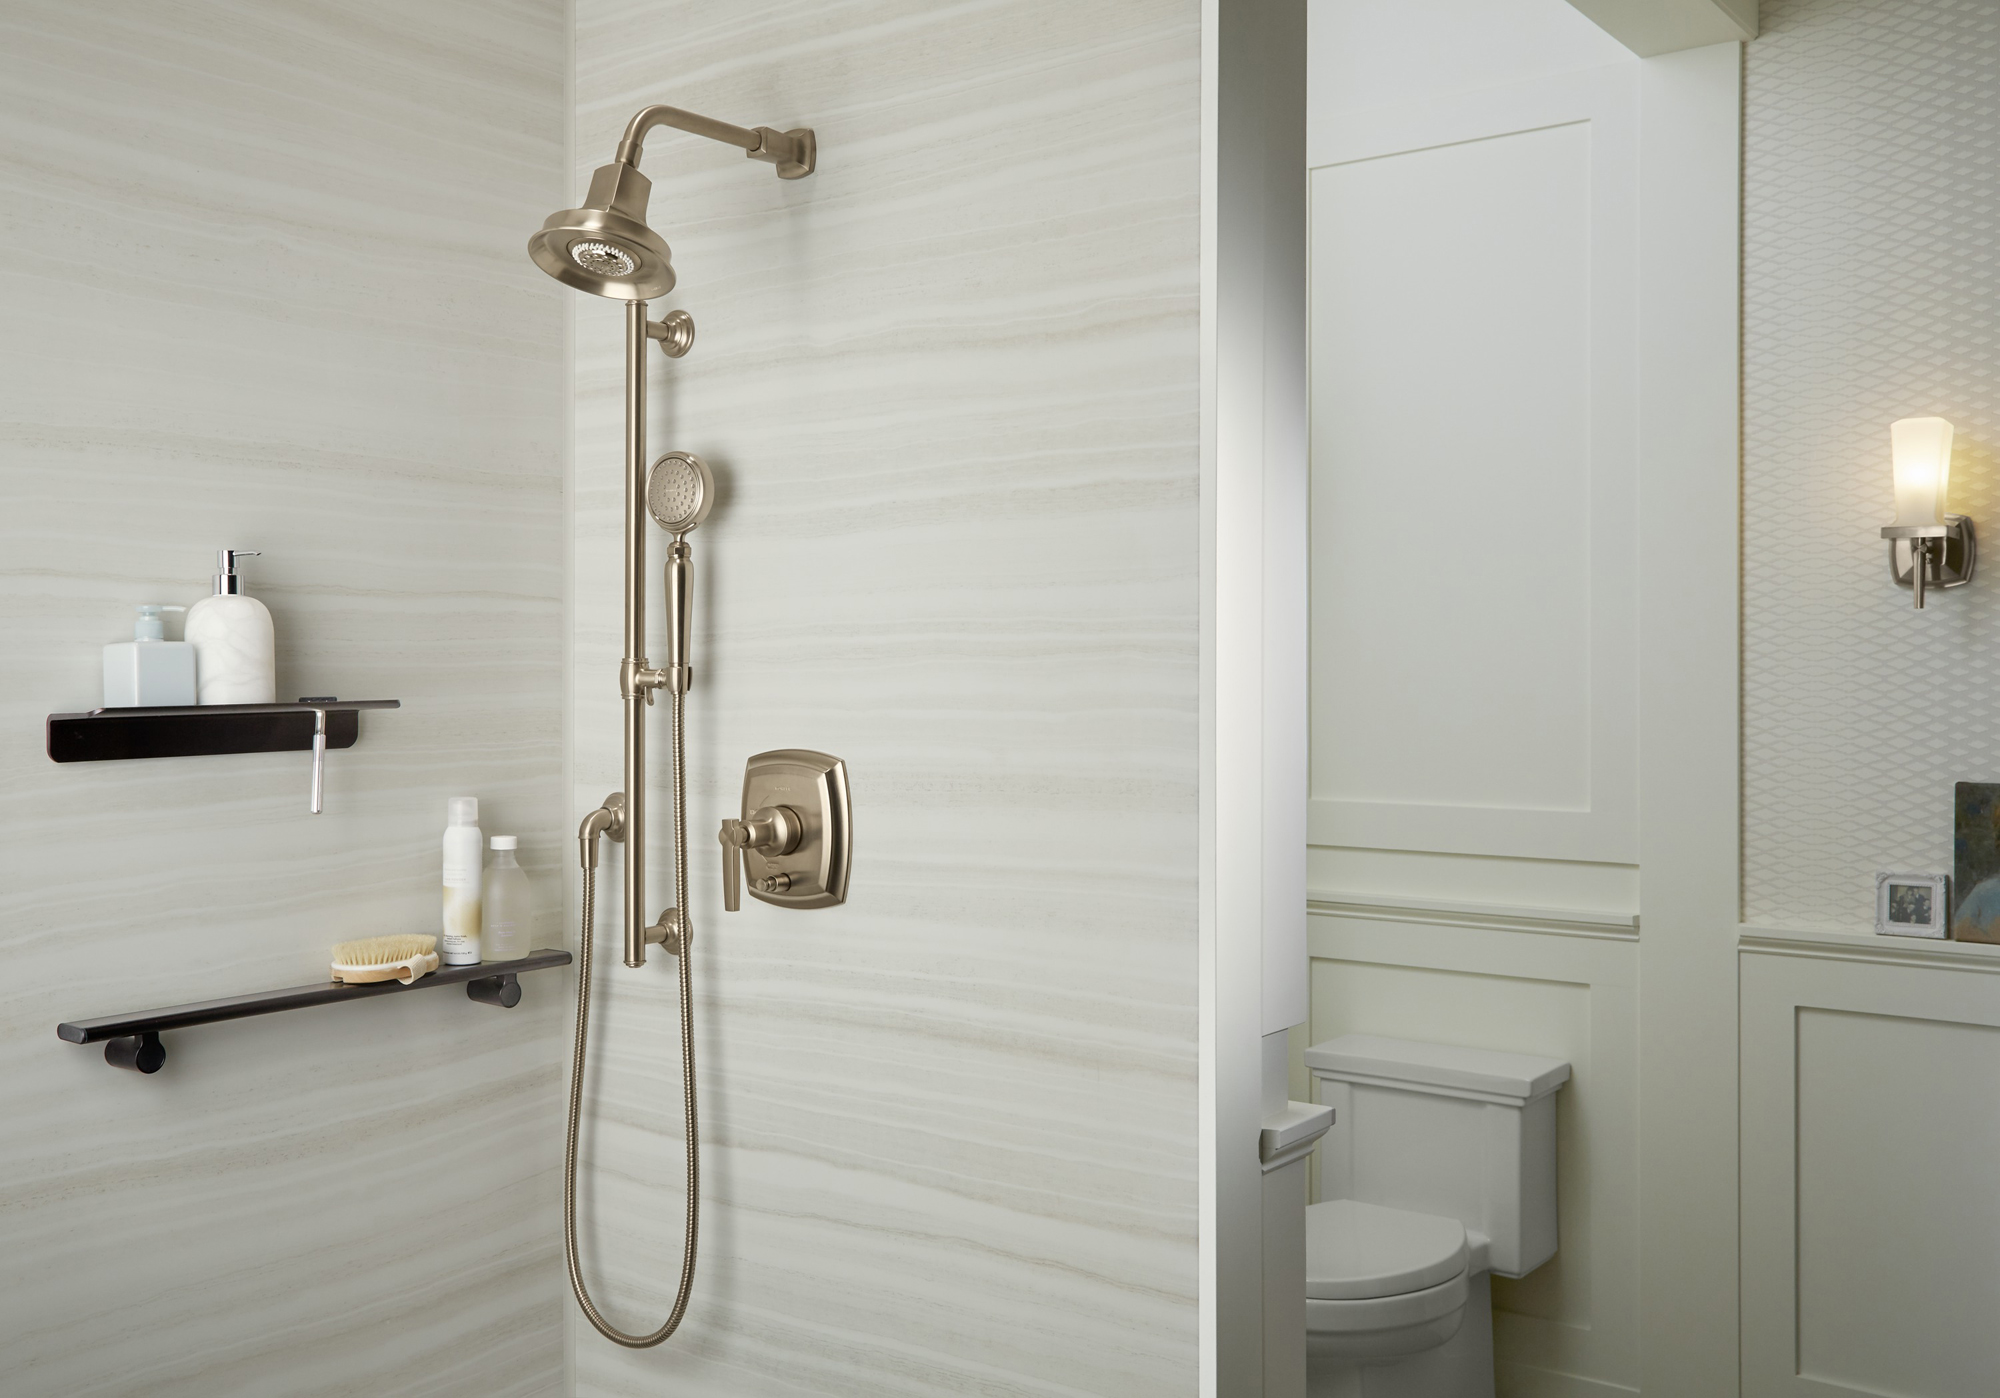 Artifacts® shower slidebar     Artifacts handshower     Margaux® showerhead     Margaux valve trim     If some family members are quite a bit taller than others, a handshower with a slidebar is a simple solution.